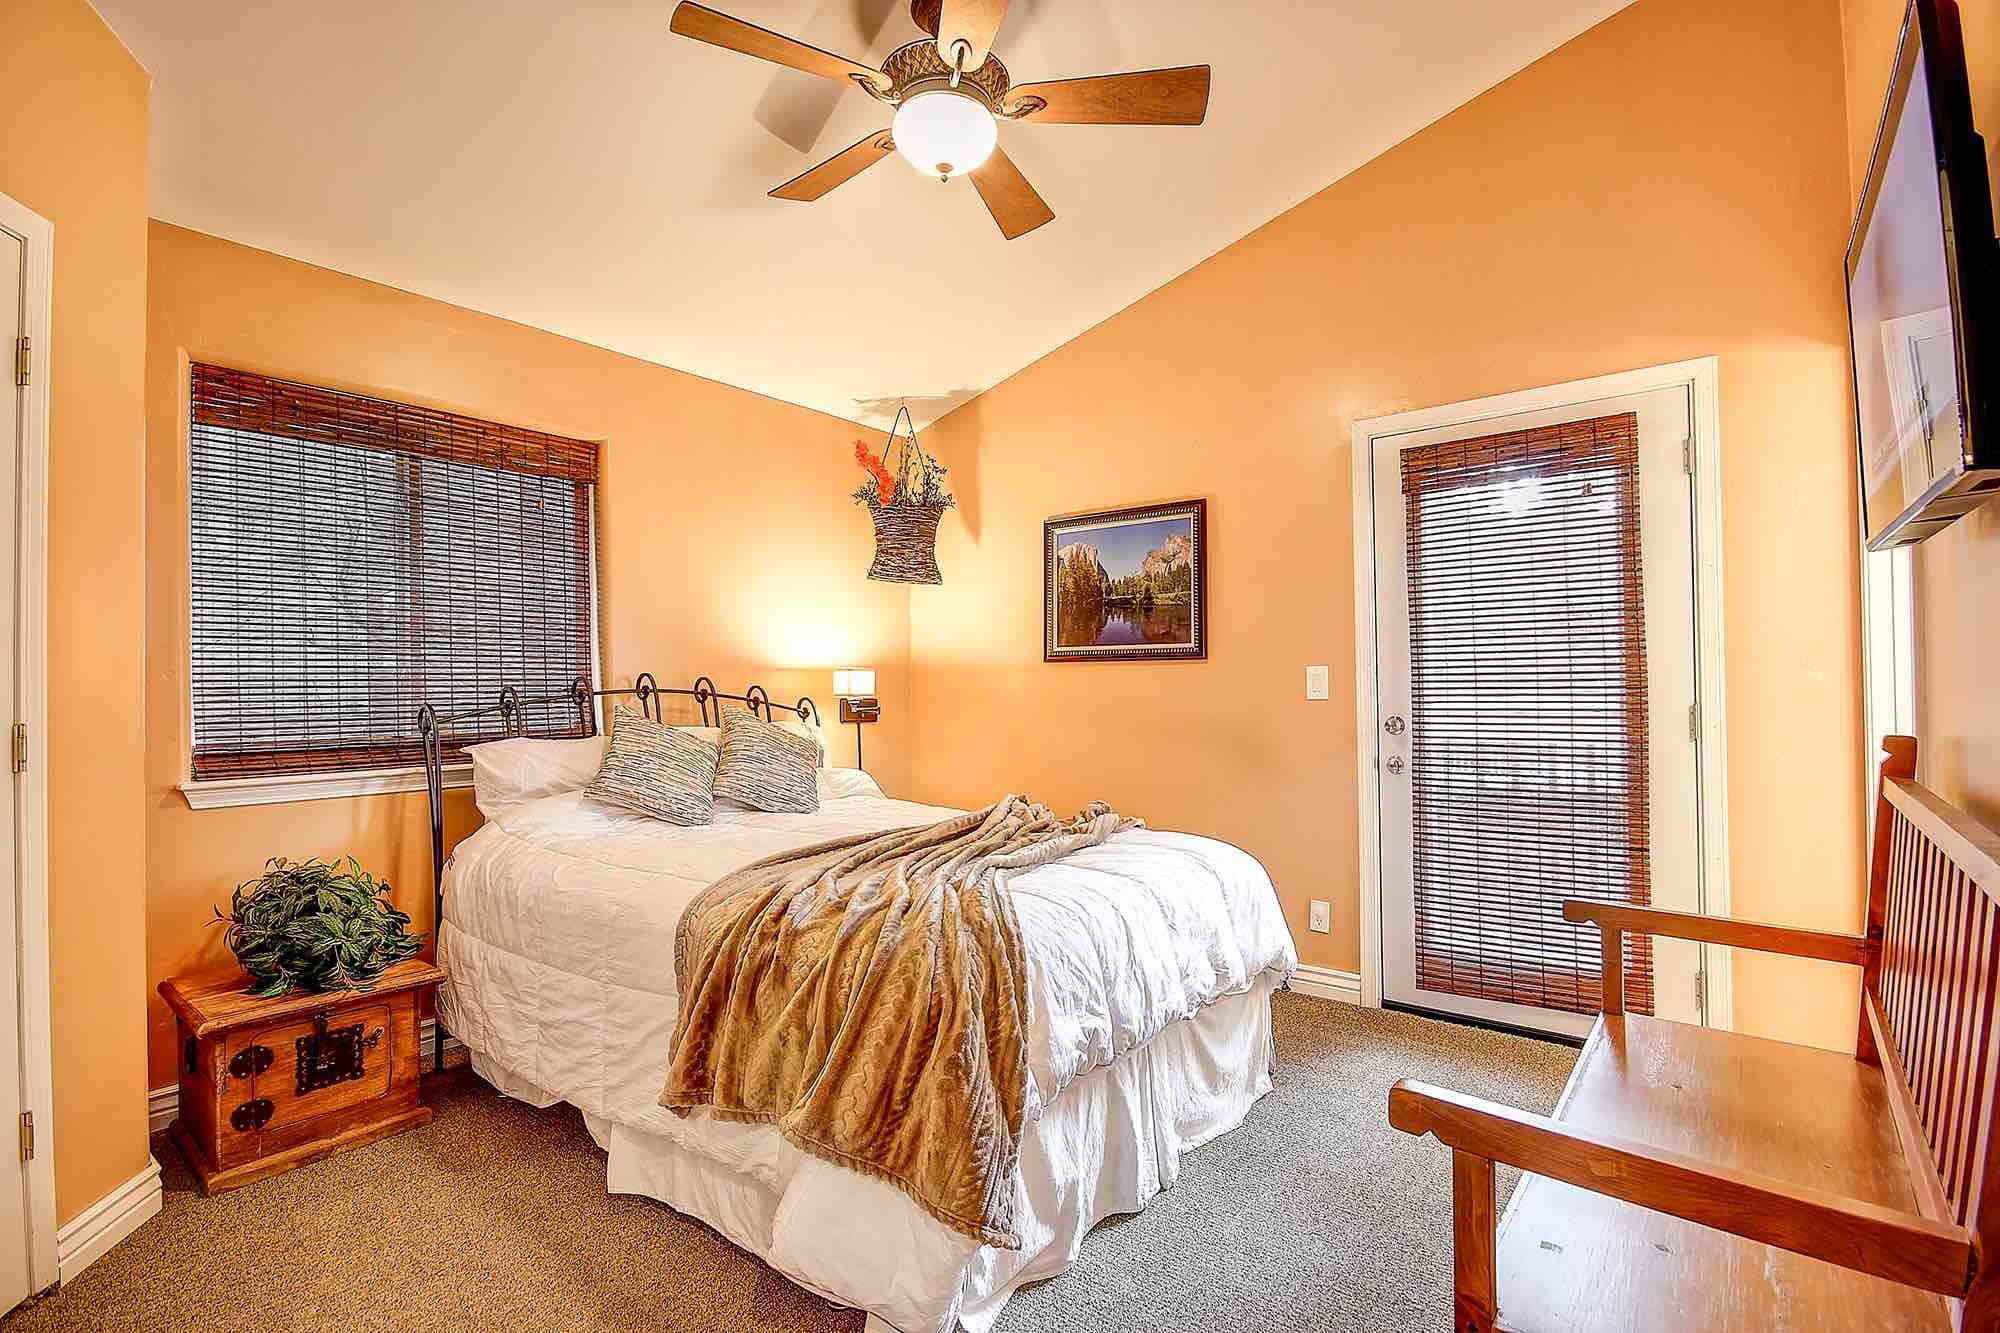 homeaway vacation in rental pines cabin flagstaff your relaxation cabins destination tranquil rentals the